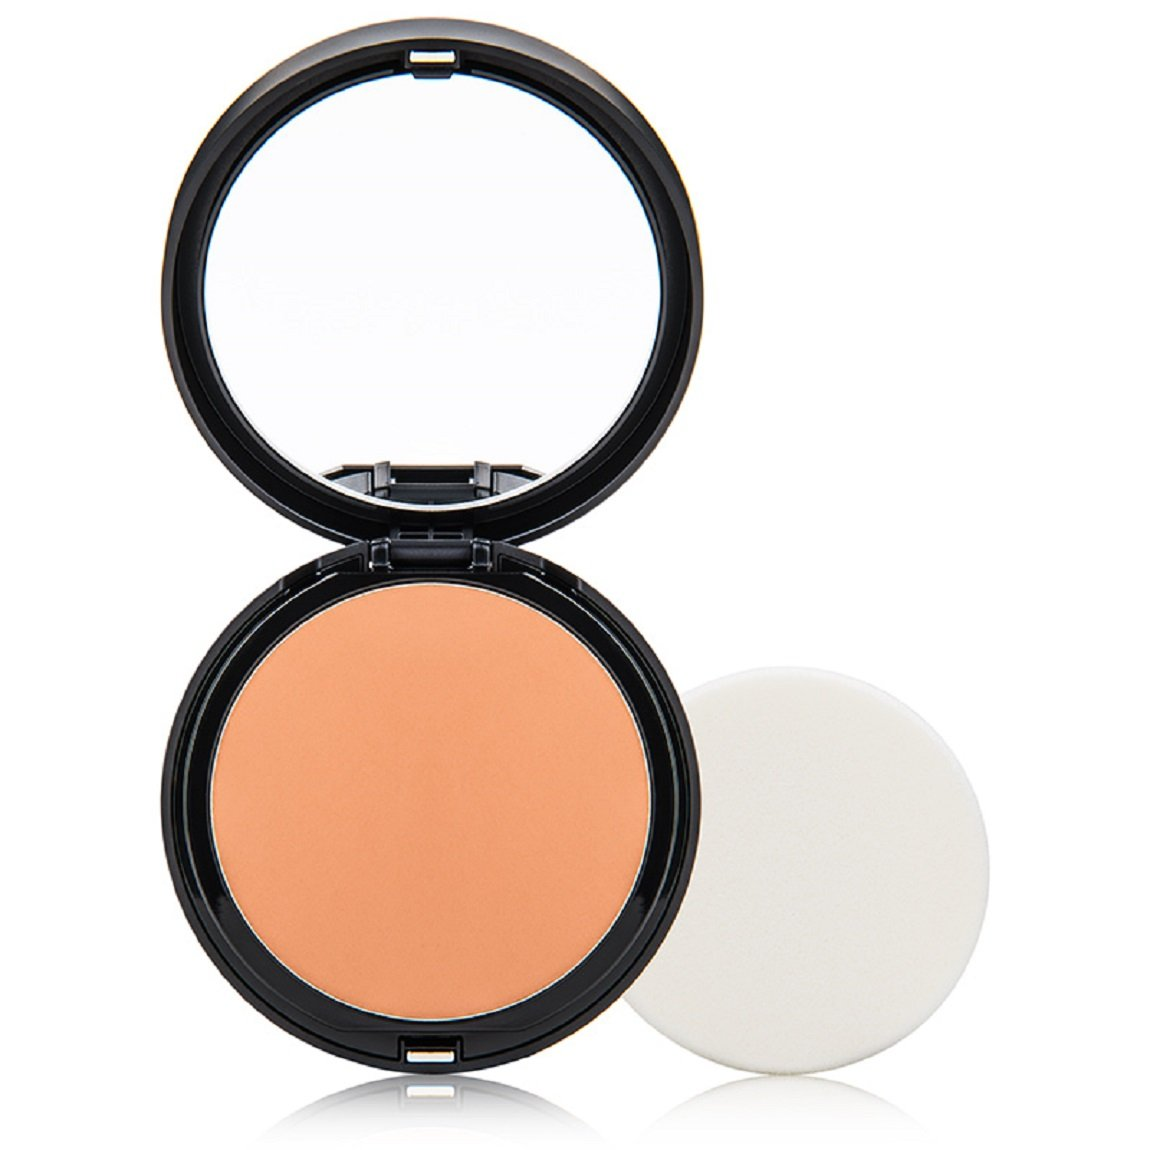 bareMinerals Barepro Performance Wear Powder Foundation, Cool Beige, 0.34 Ounce Mainspring America Inc. DBA Direct Cosmetics 81534